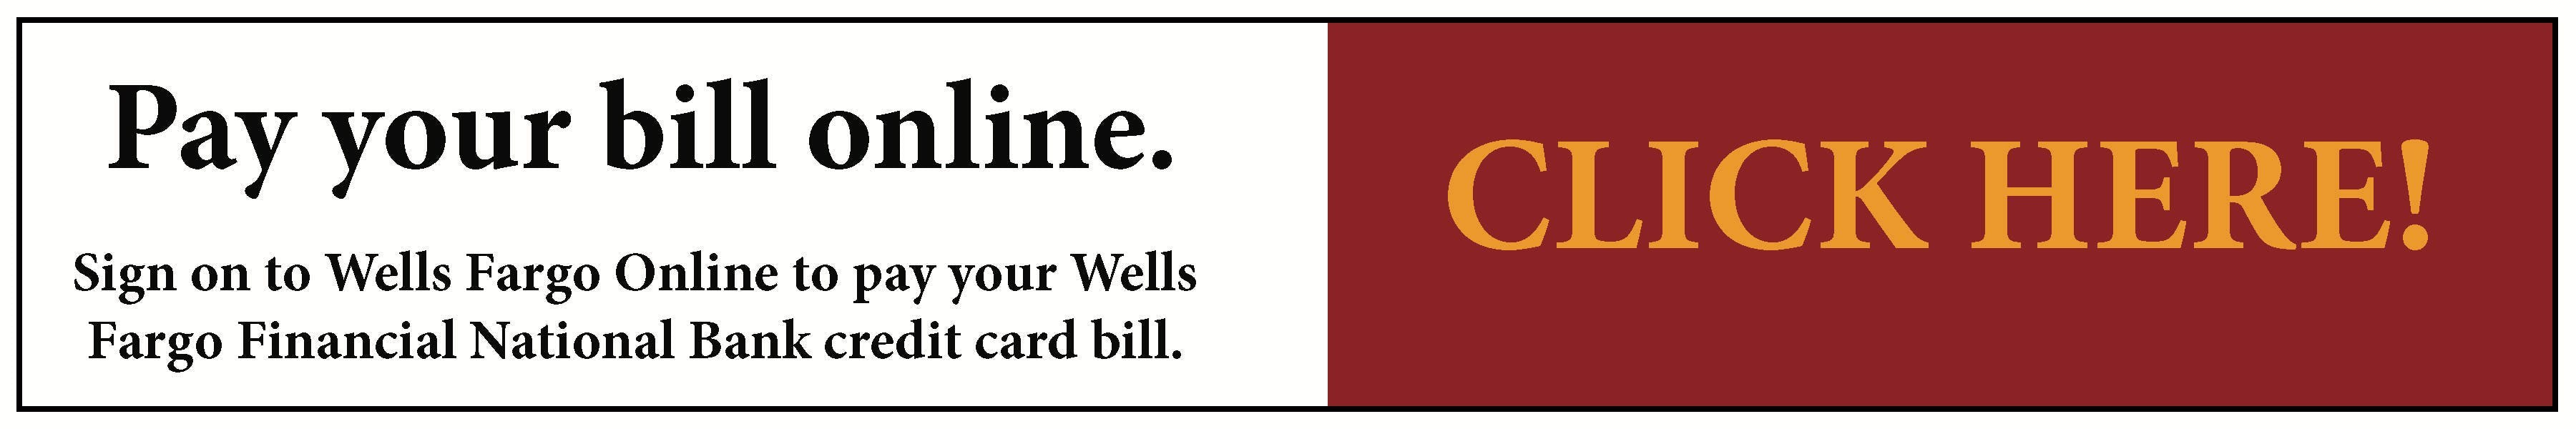 Sign on to Wells Fargo Online to pay your Wells Fargo Financial national Bank credit card bill